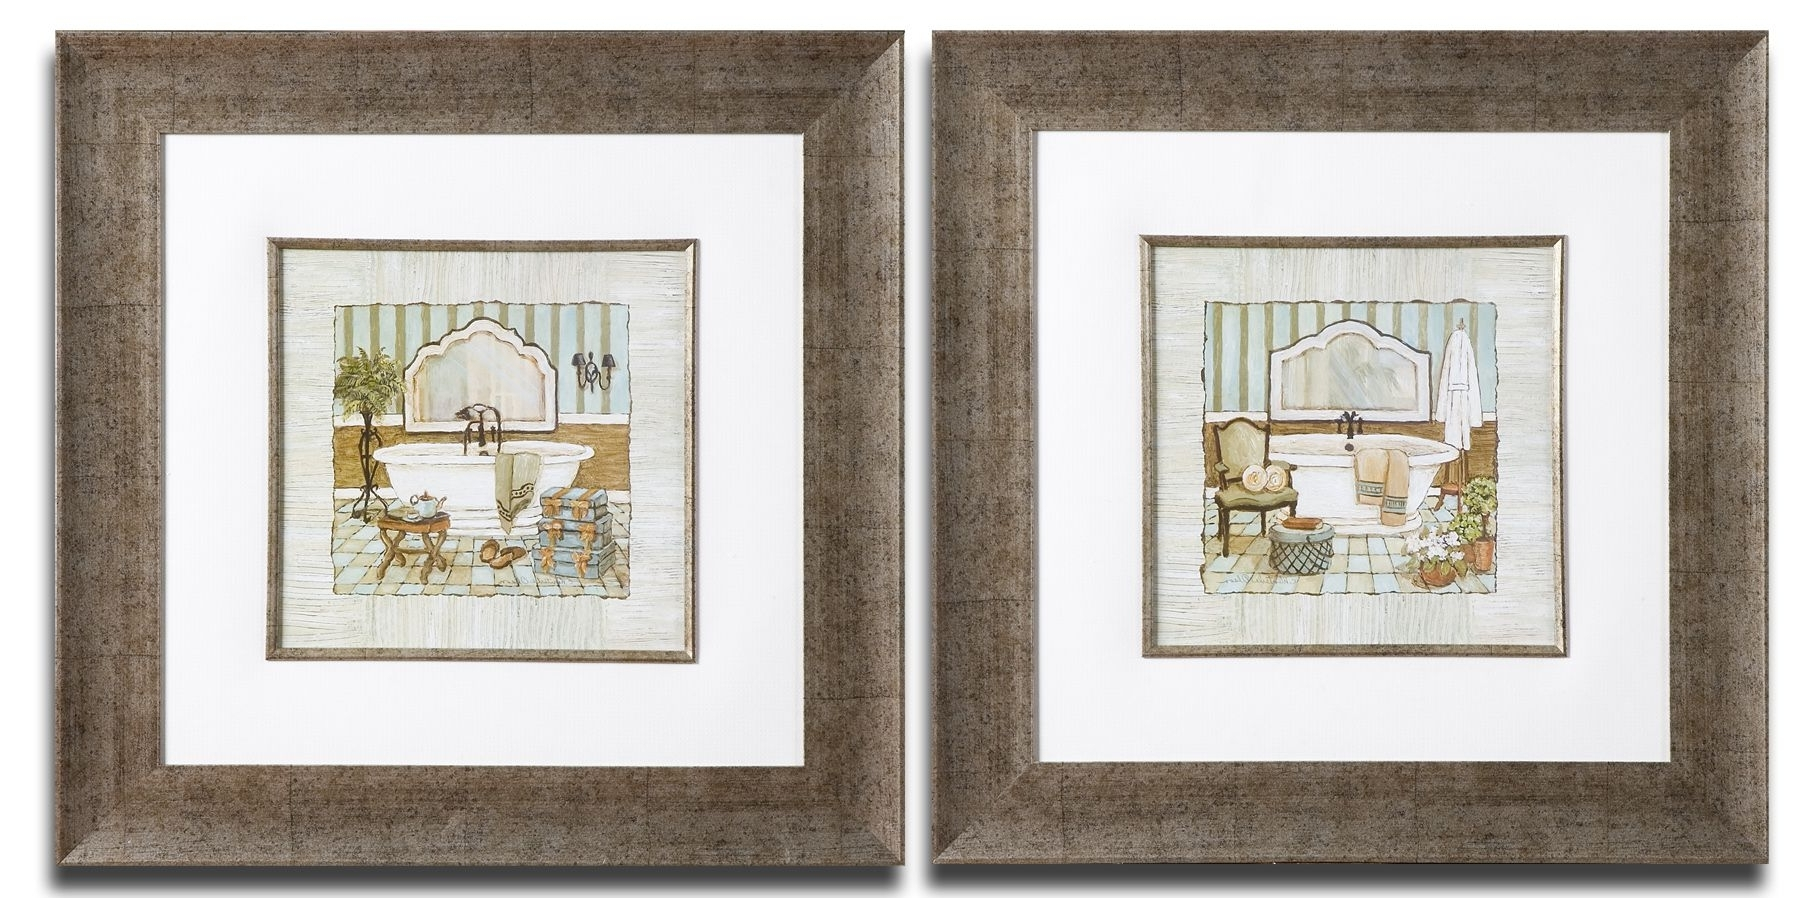 Framed Art For Bathroom, French Bathroom Prints Vintage Intended For Most  Popular French Country Wall